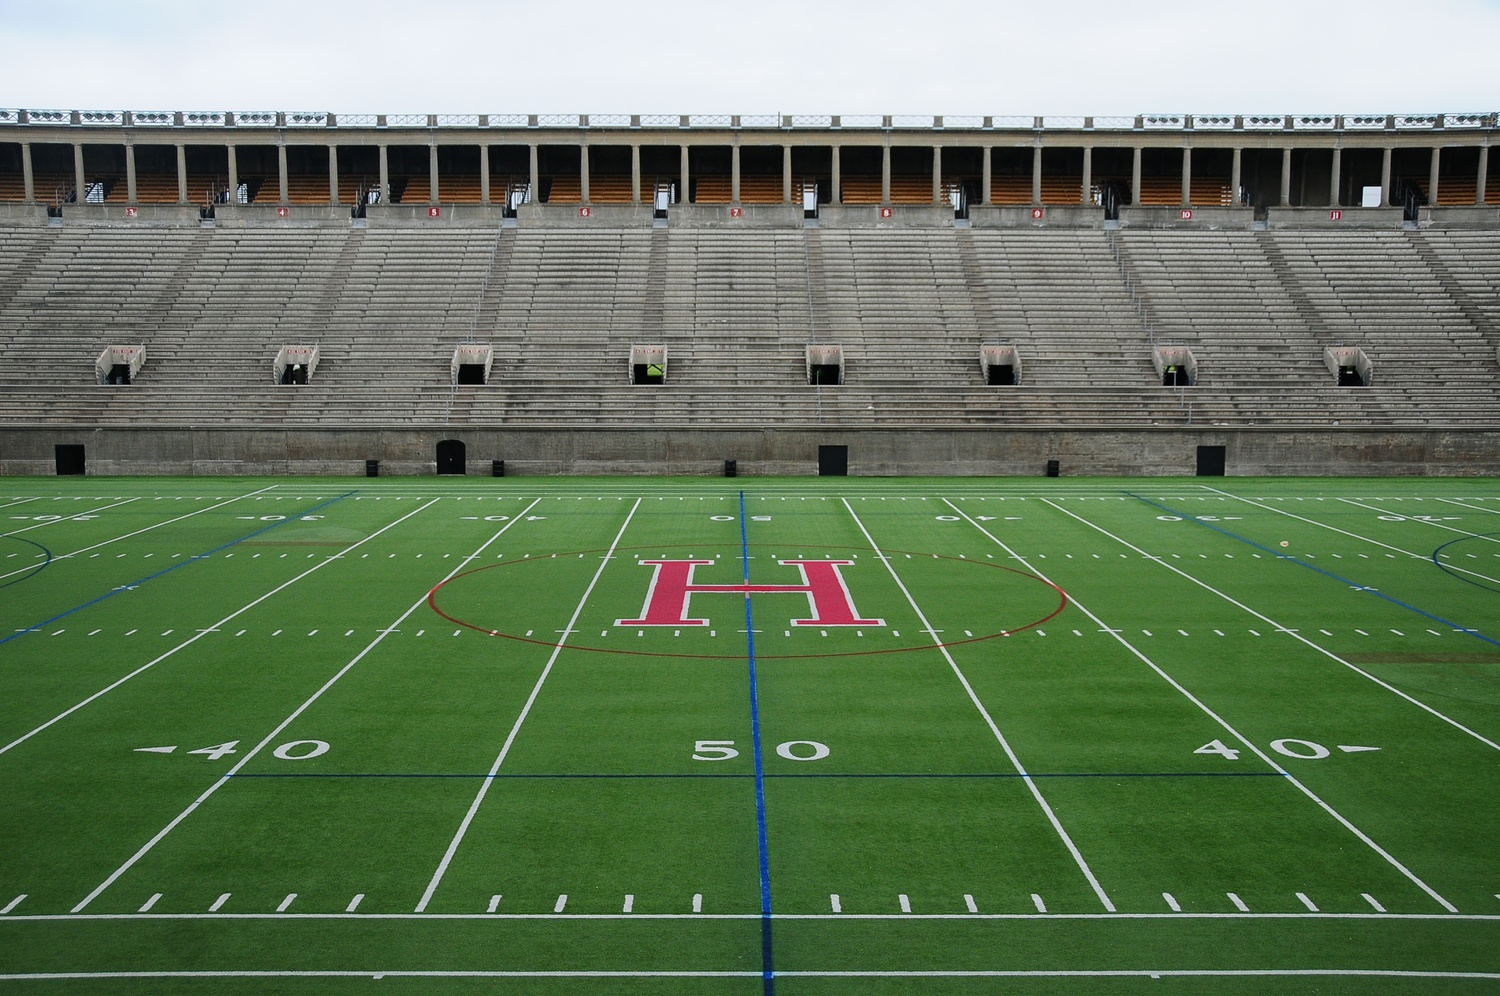 Harvard Stadium began a renovation project on April 6 that will install a hybrid turf technology as well as new goalposts. The project, which will also overhaul electrical work on the perimeter of the field, will be completed by June 8th.